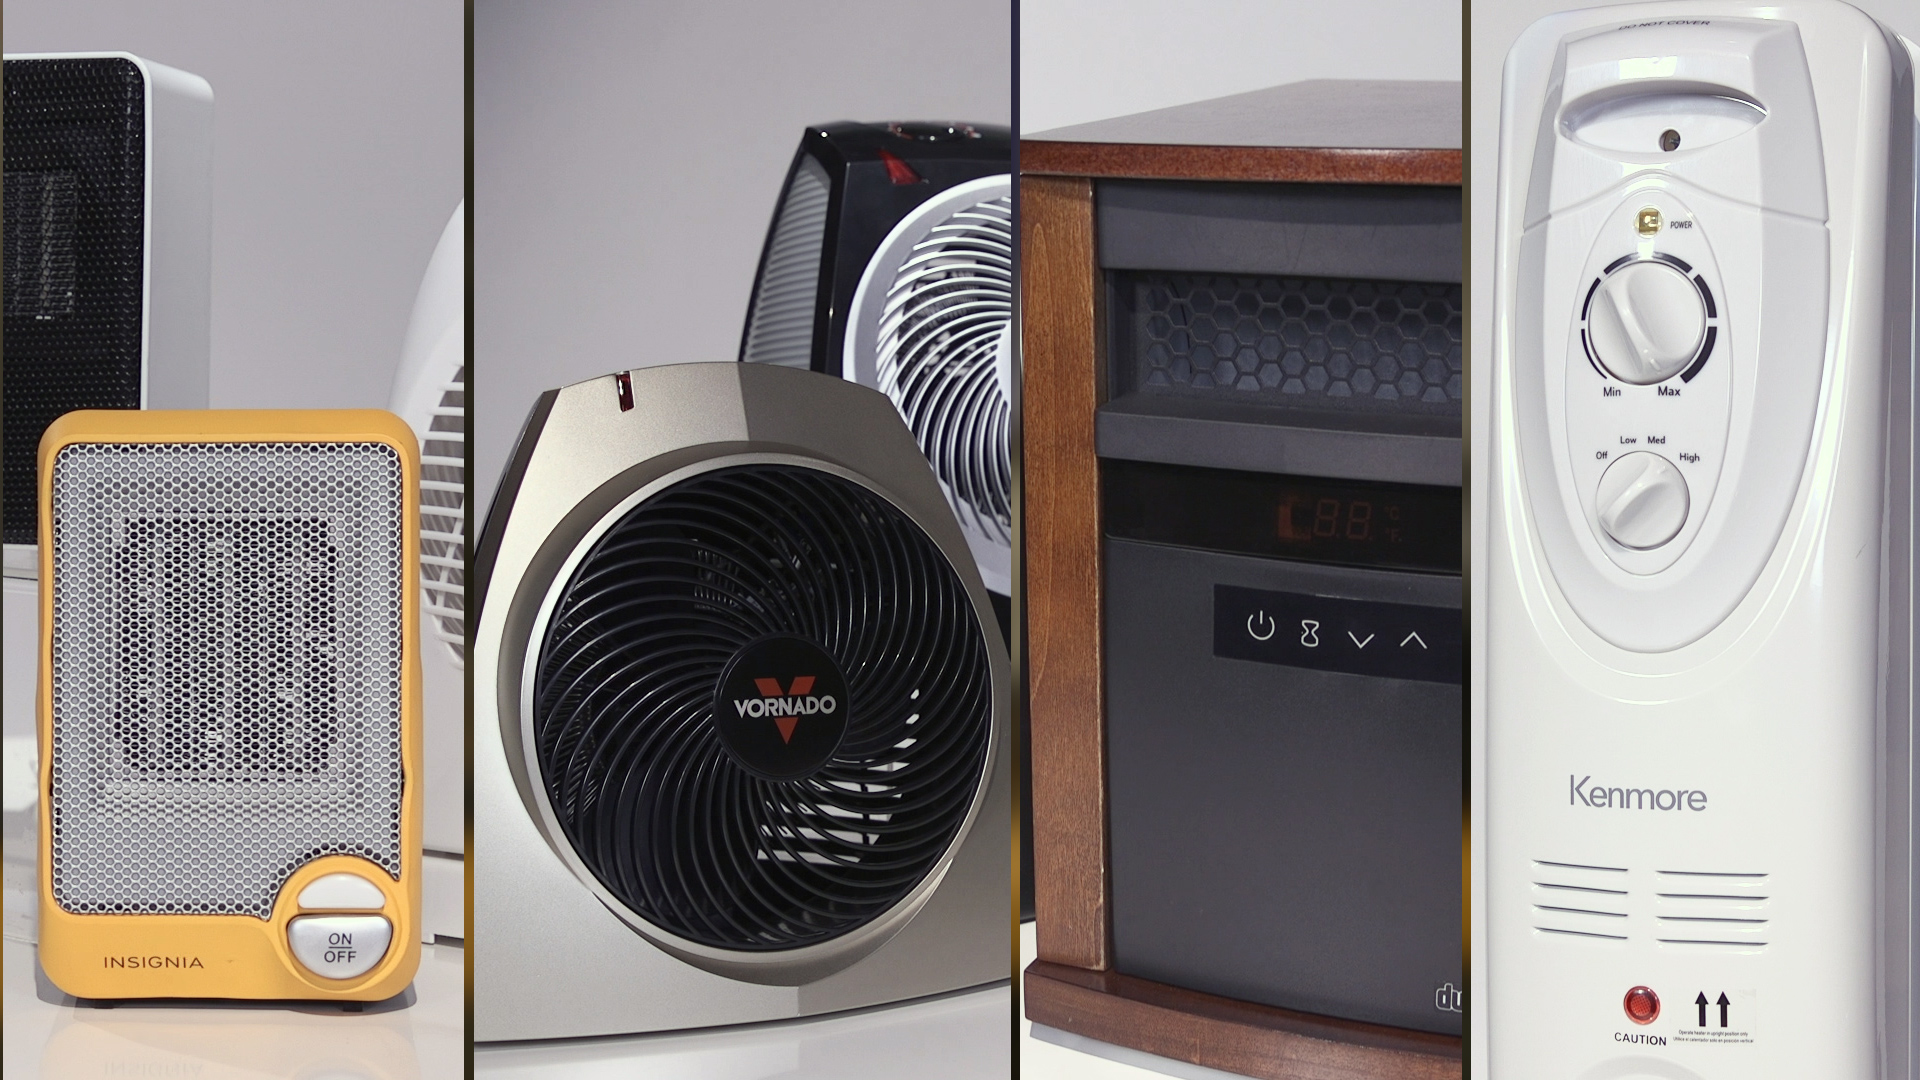 What are some popular crawlspace heater brands?